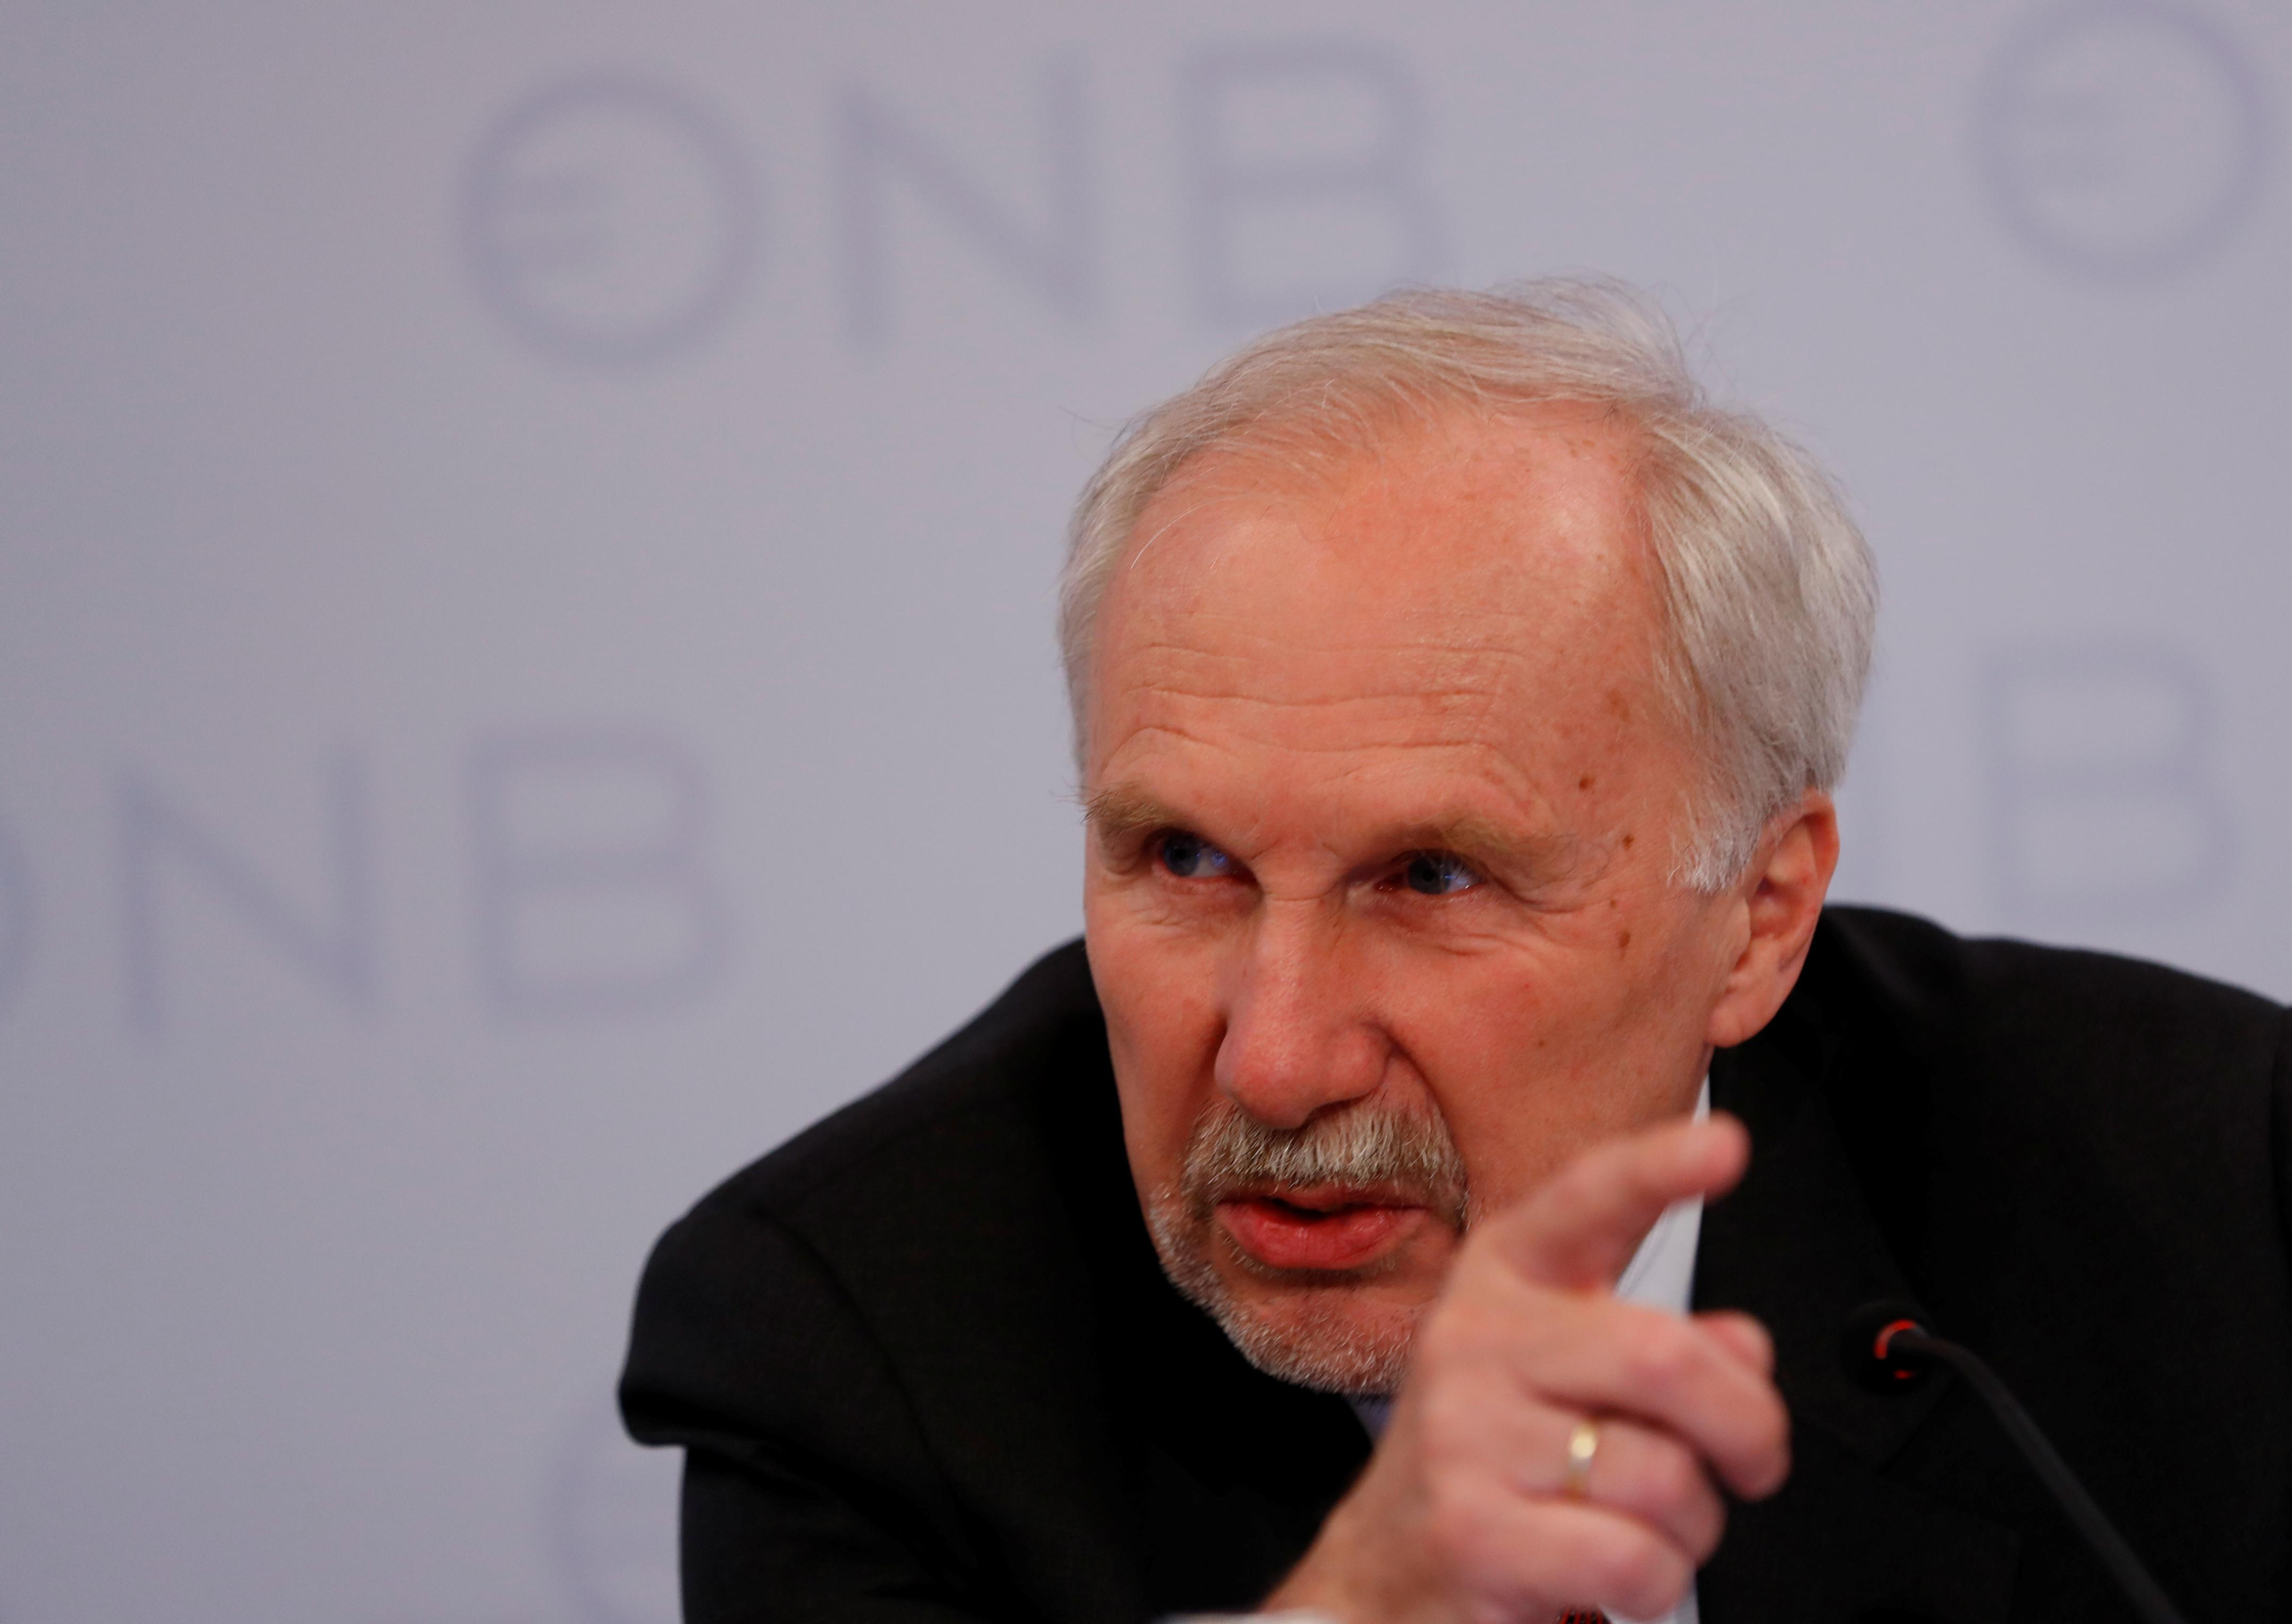 ECB should show flexibility on inflation target: Nowotny